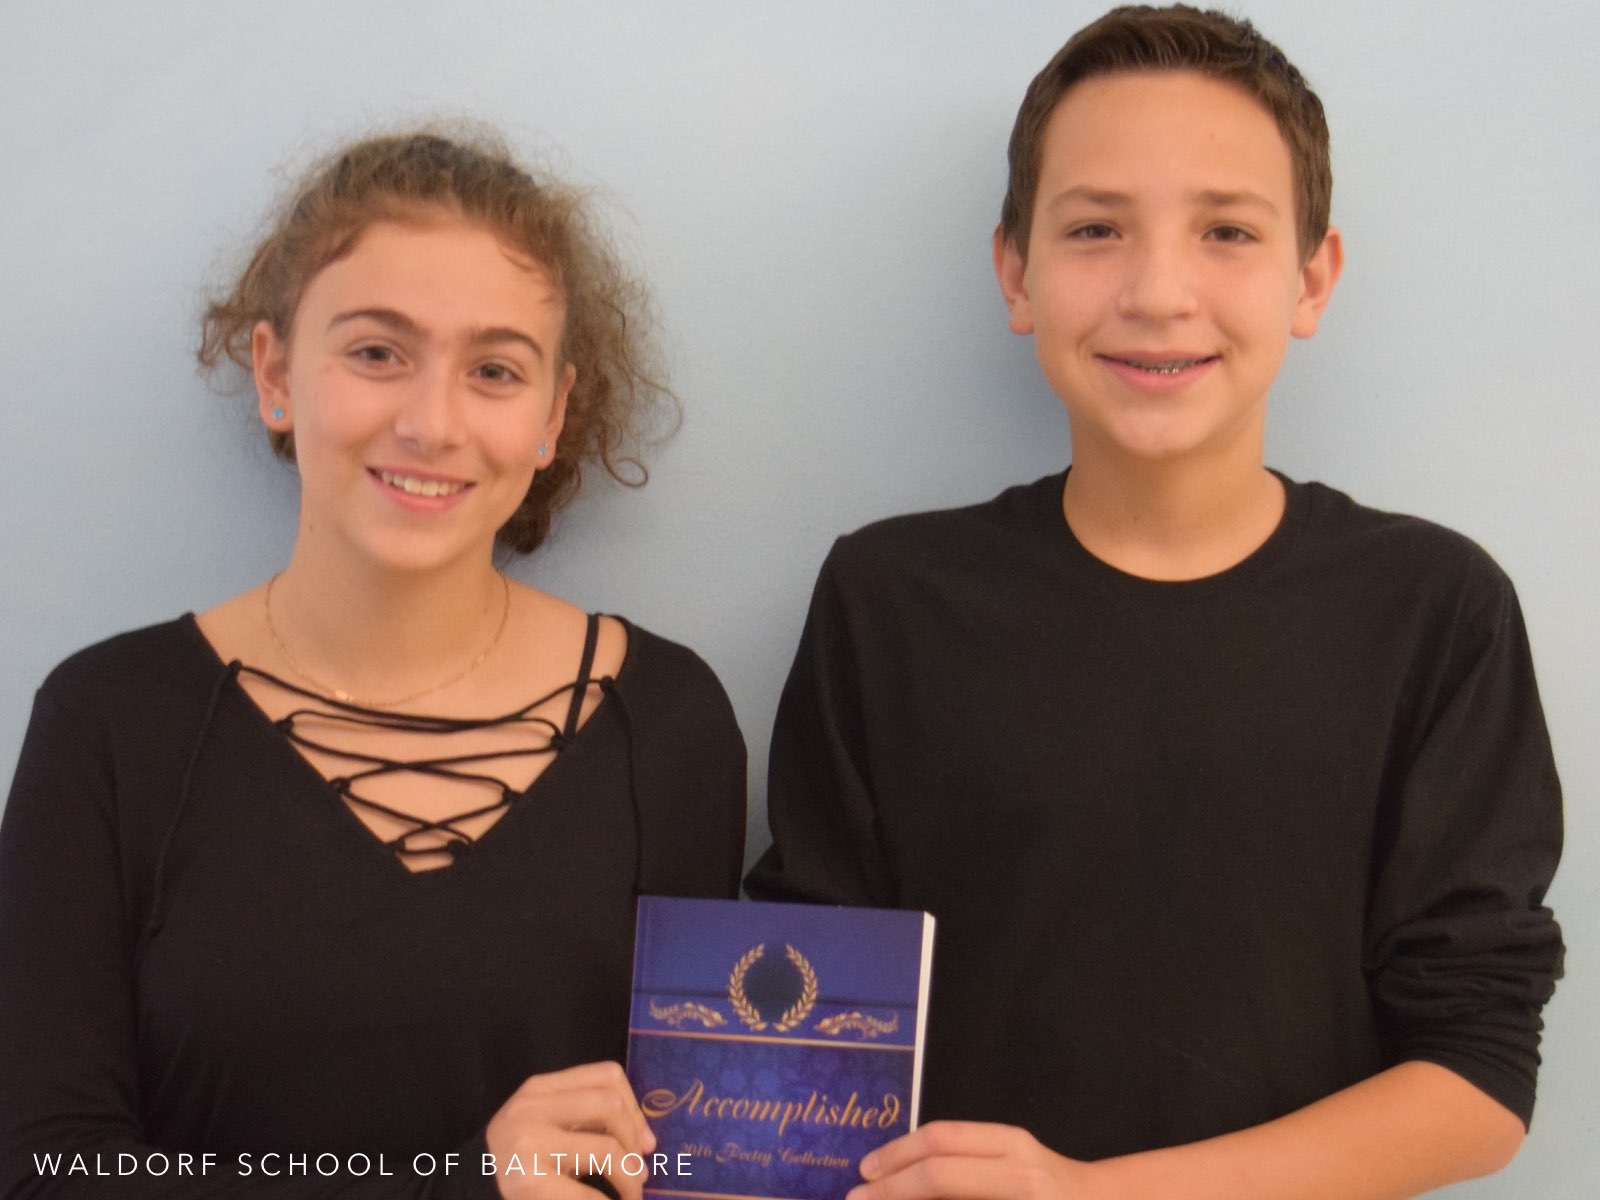 s(cool) stories: waldorf school of baltimore - (cool) progeny